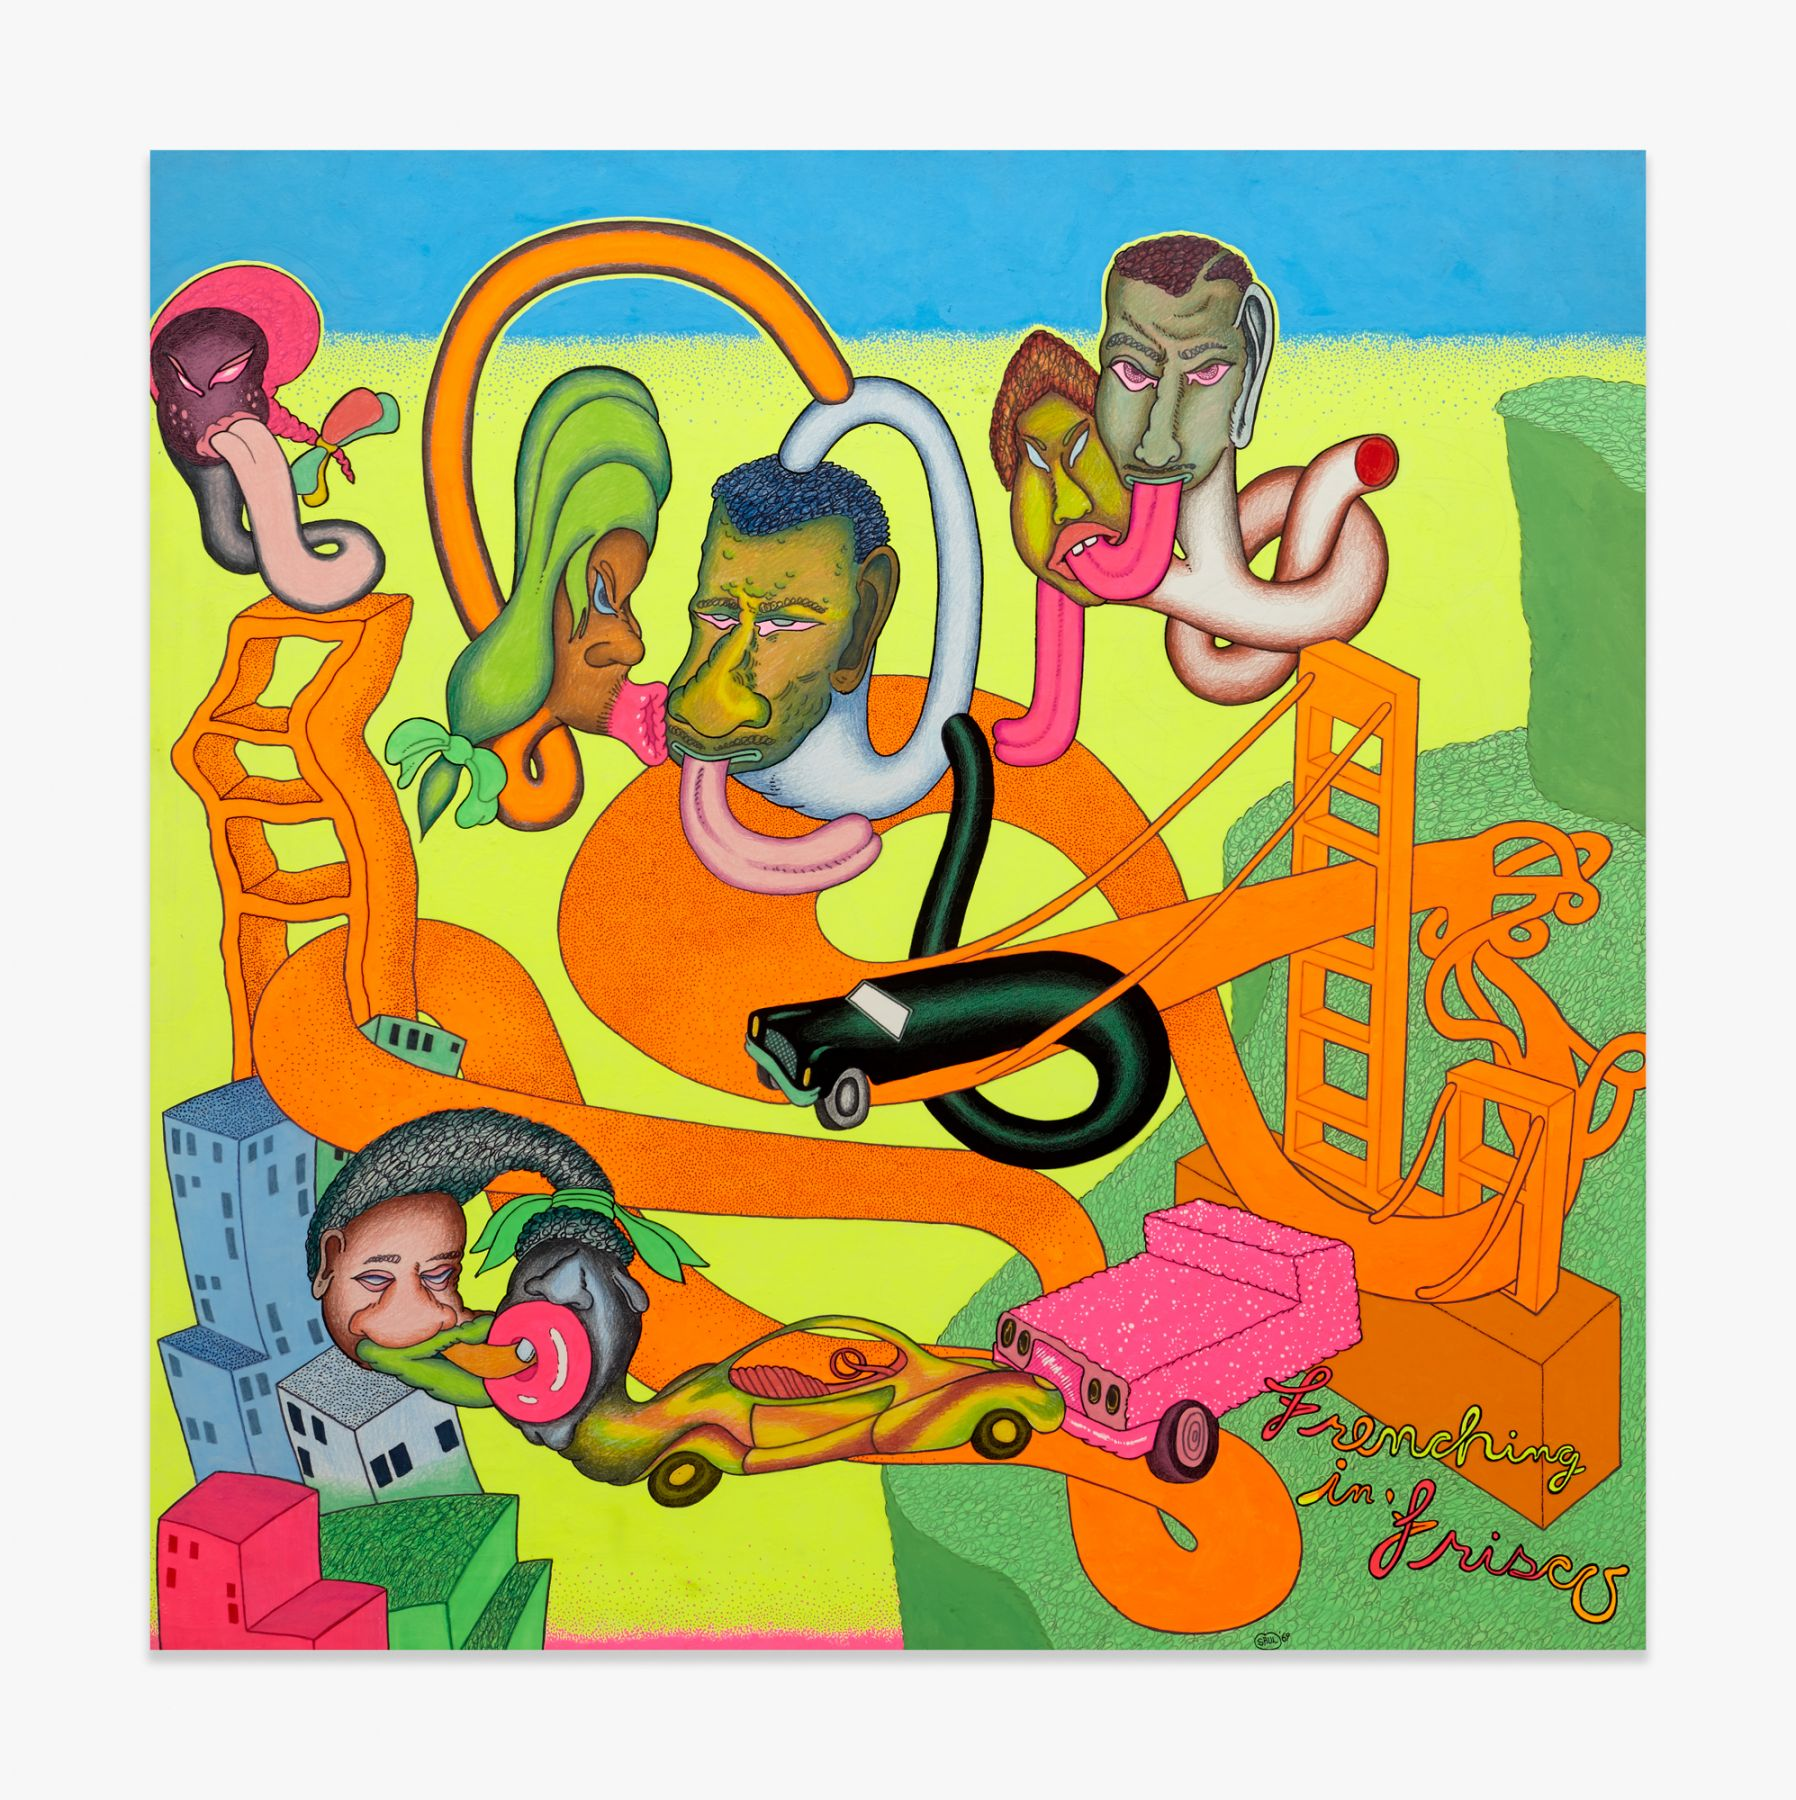 Peter Saul  Frenching in 'Frisco